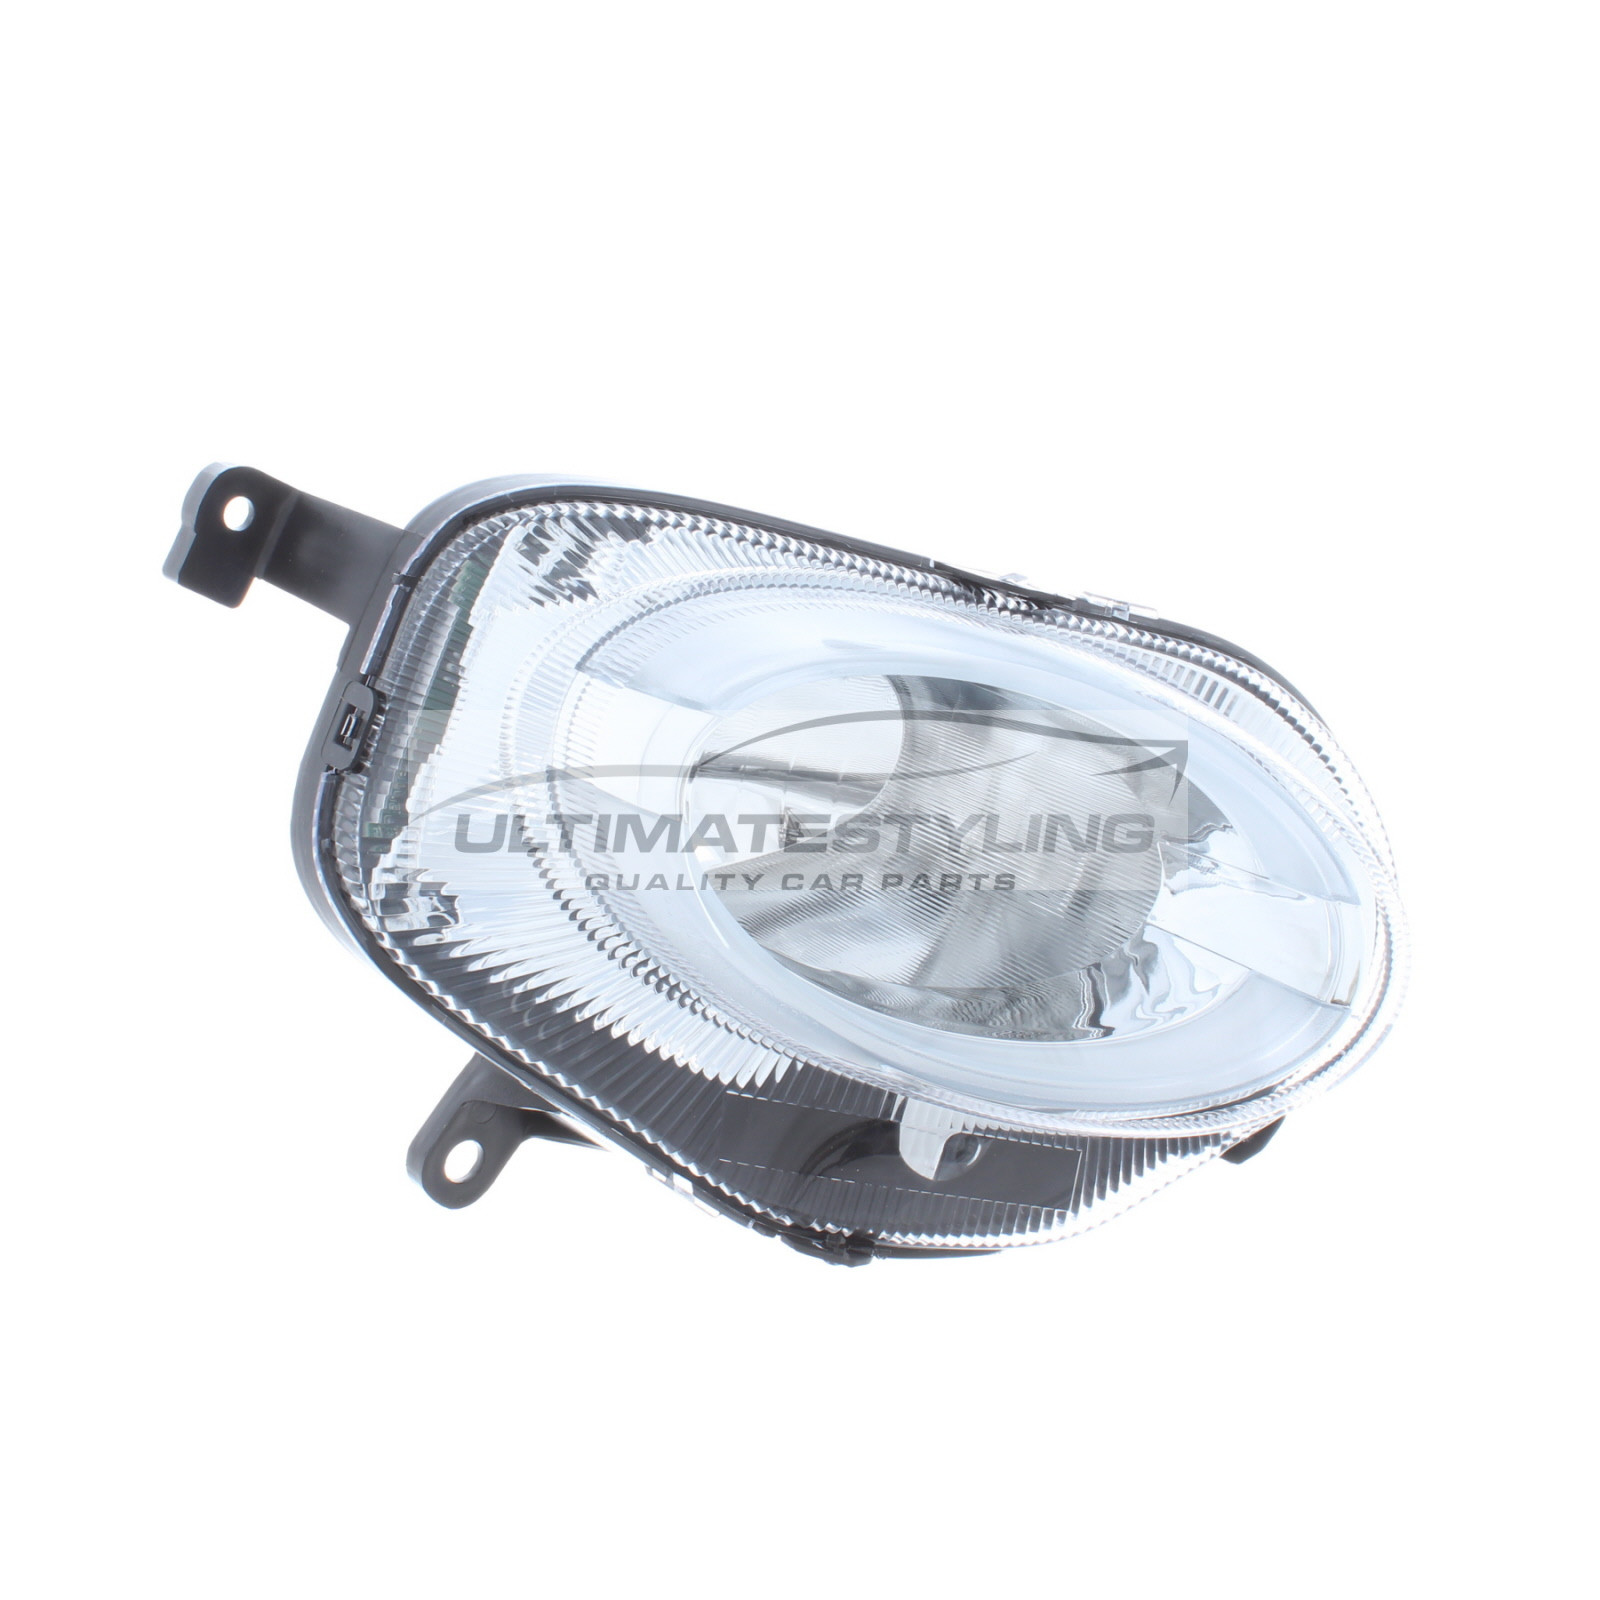 Headlight / Headlamp for Abarth 595